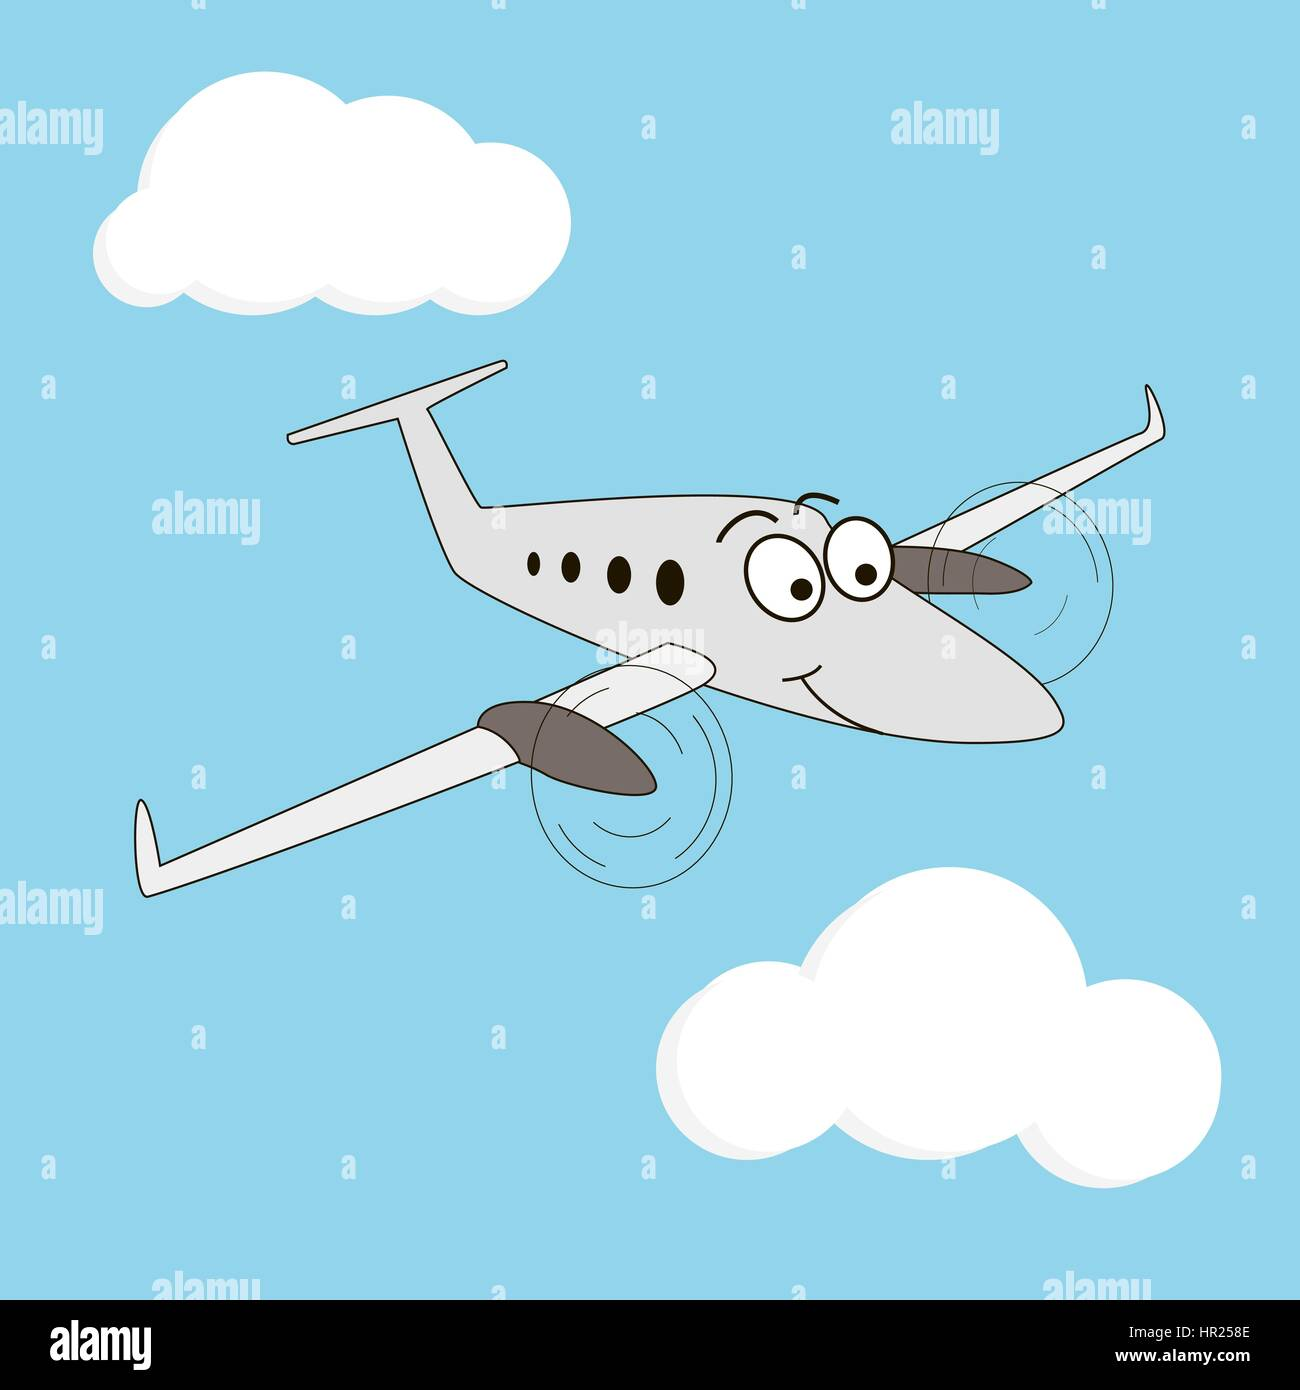 Cartoon style turboprop smiling airplane on a sky background. Happy two engine aircraft with big eyes. Sky, wings, - Stock Vector